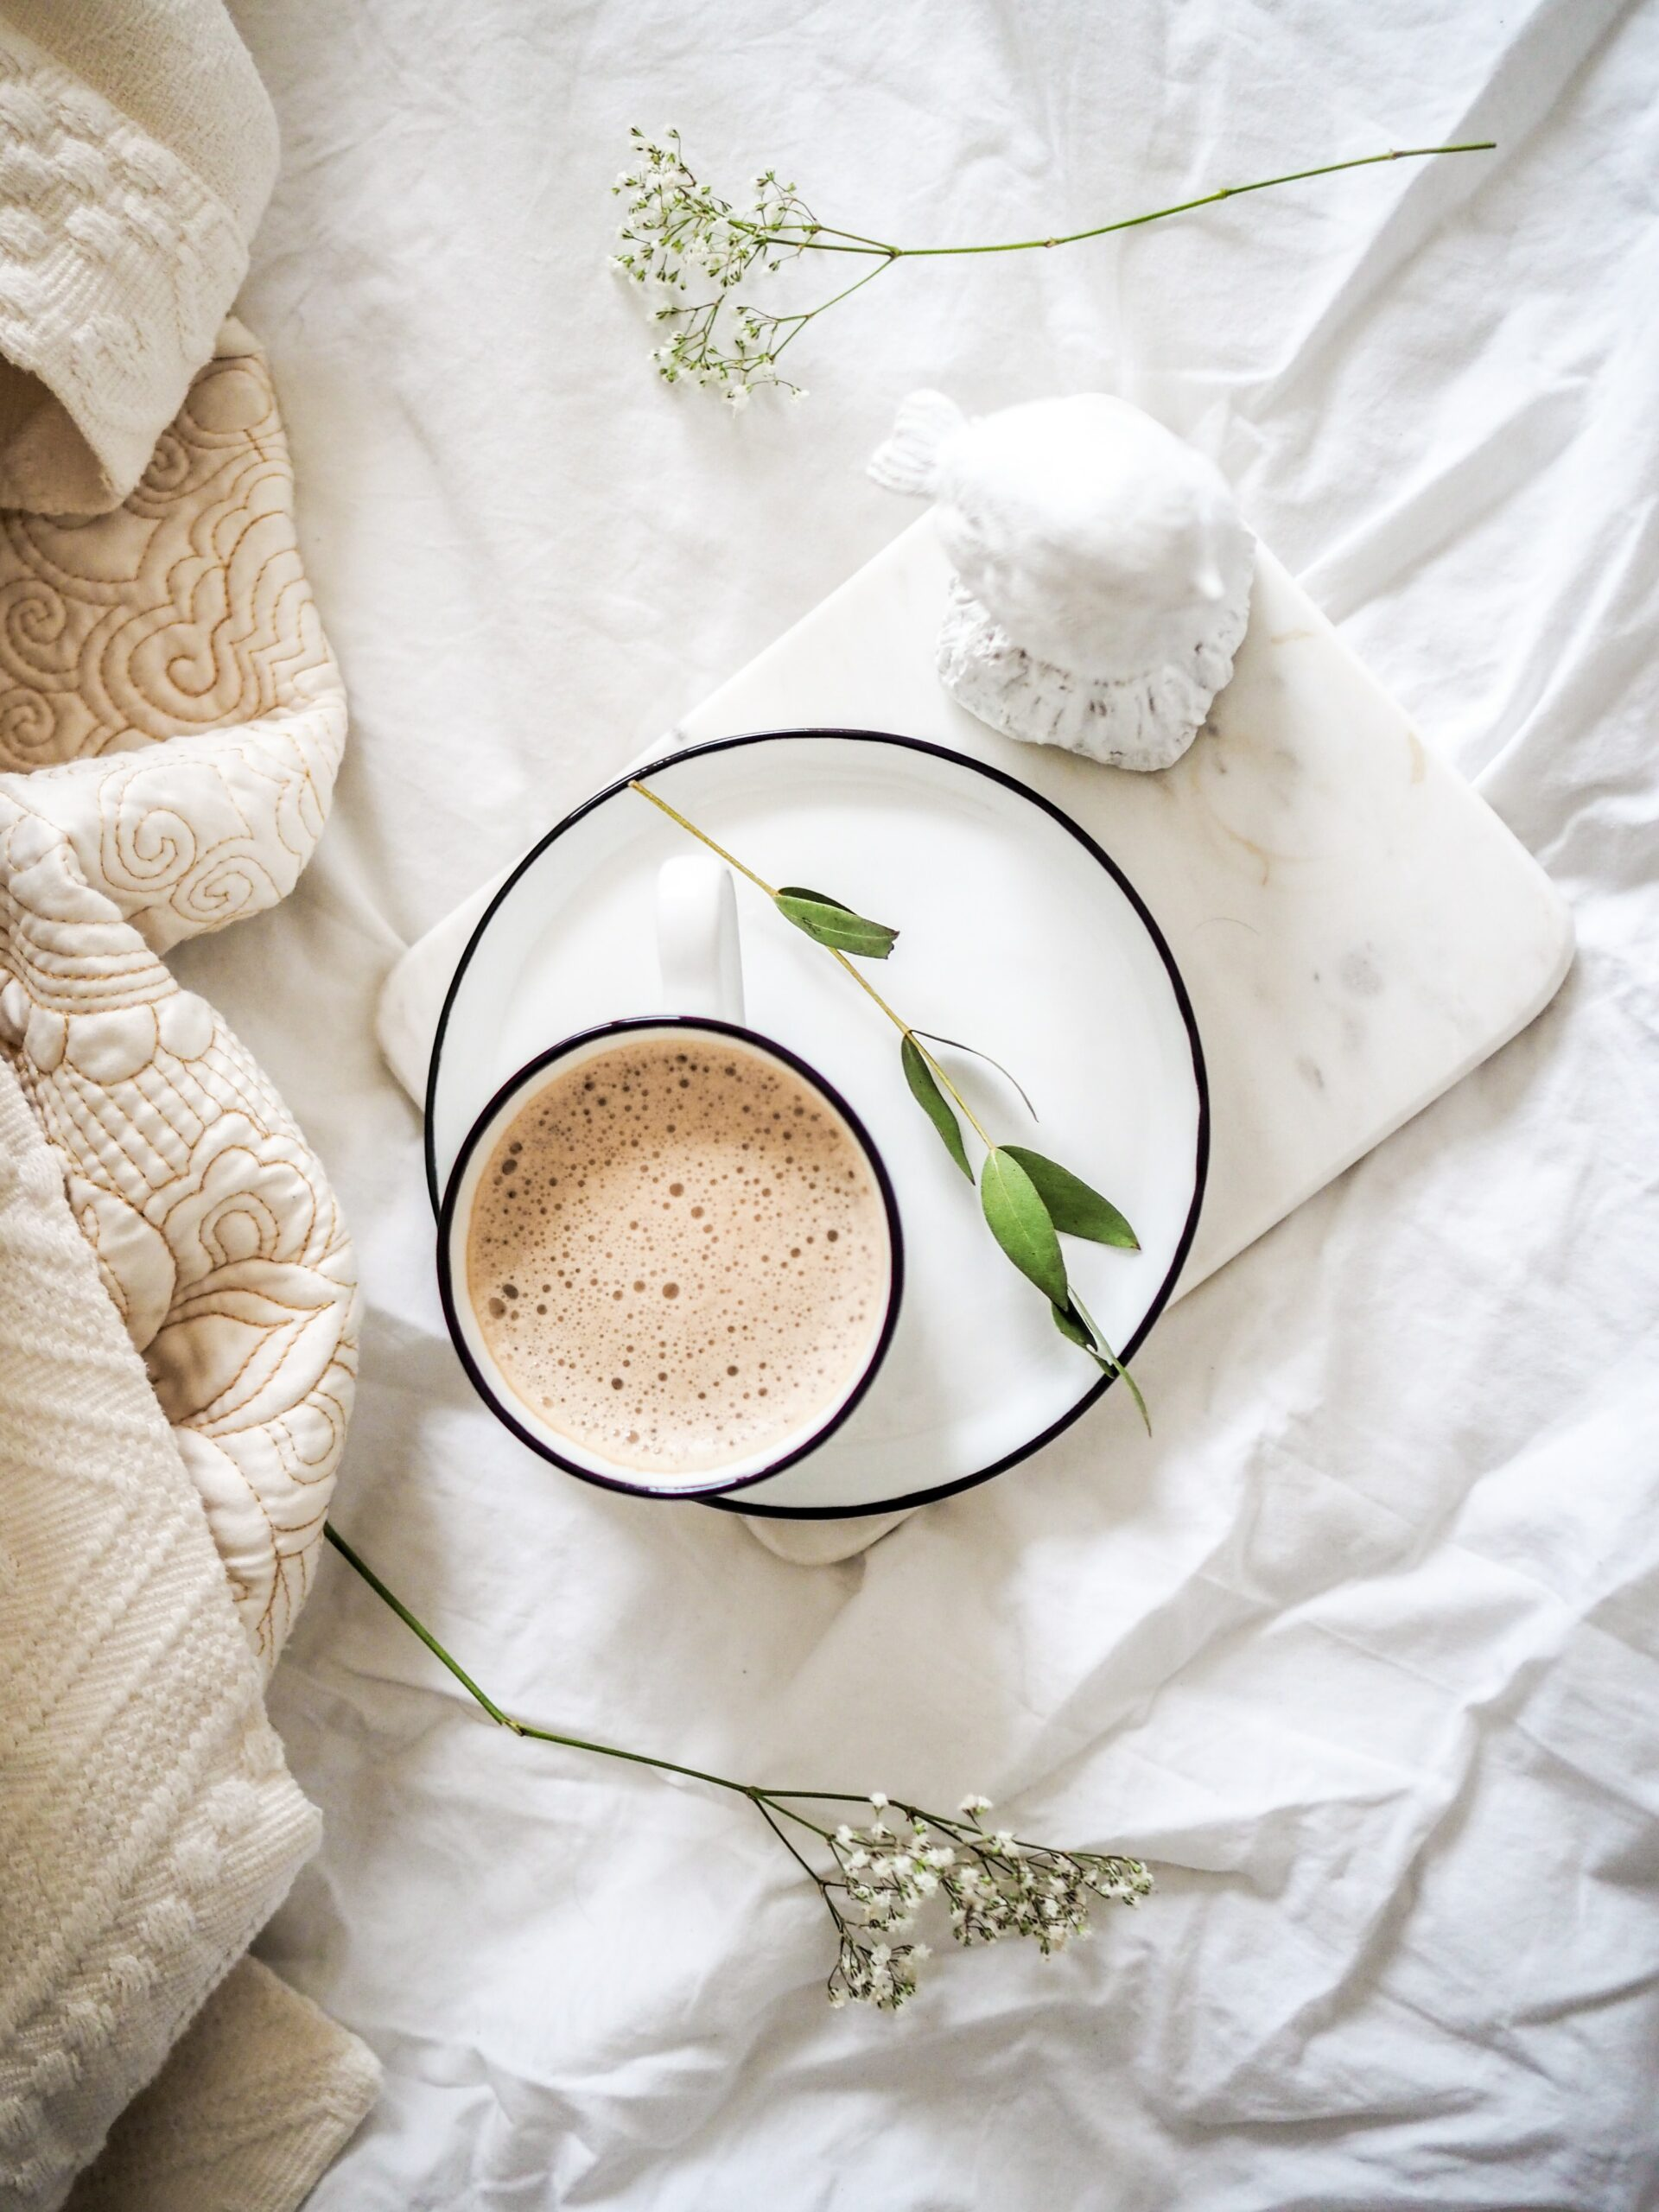 Your Morning Routine Sets the Mood for Your Entire Day